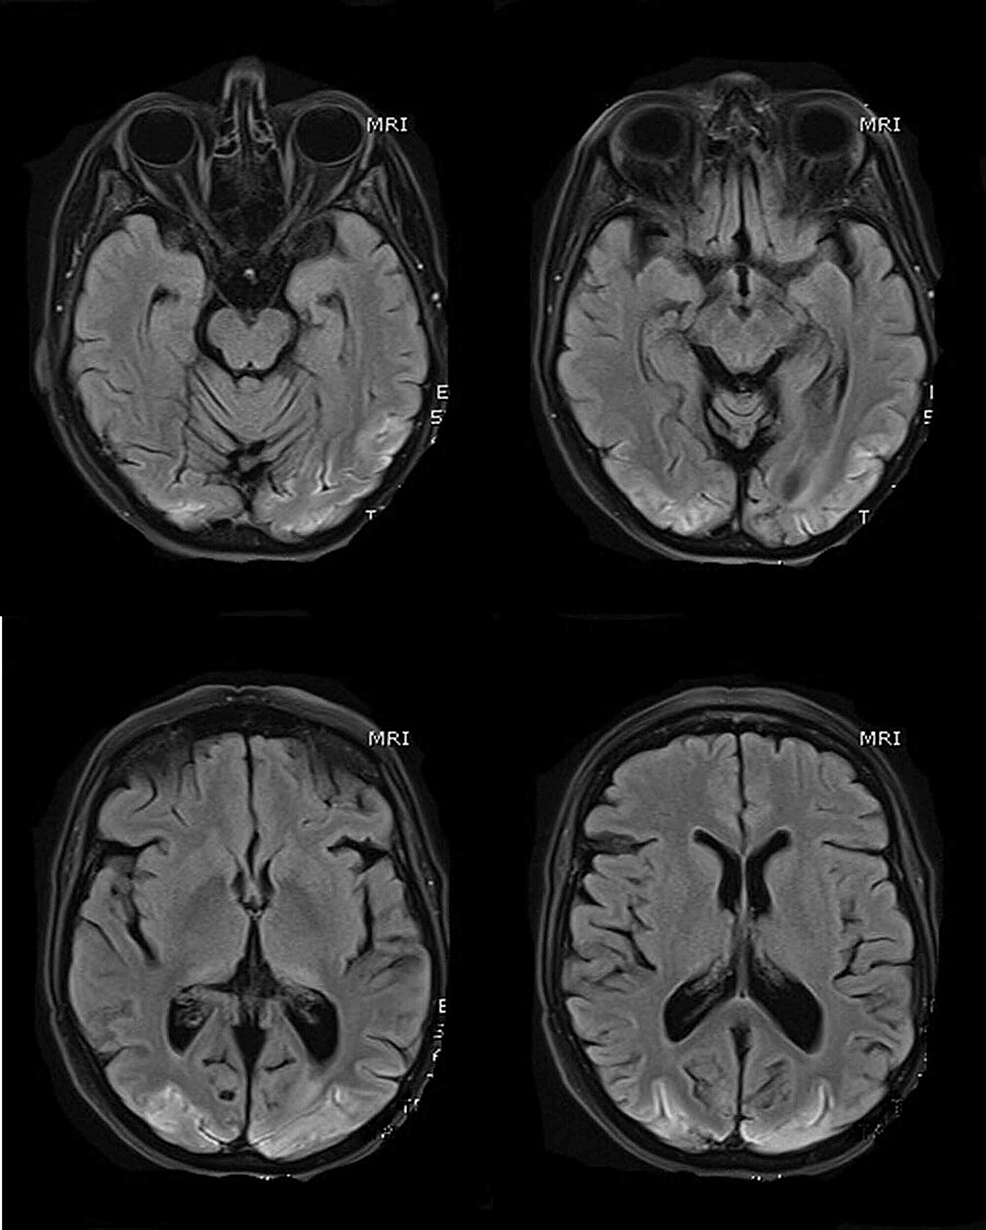 MR-scans-of-the-brain-(selected-T1-sequences)-show-bilateral-symmetrical-hyper-intensity-involving-the-bilateral-occipital-lobe-cortex;-the-changes-are-consistent-with-cortical-pseudo-laminar-necrosis-as-a-complication-of-posterior-reversible-encephalopathy-syndrome-(PRES)